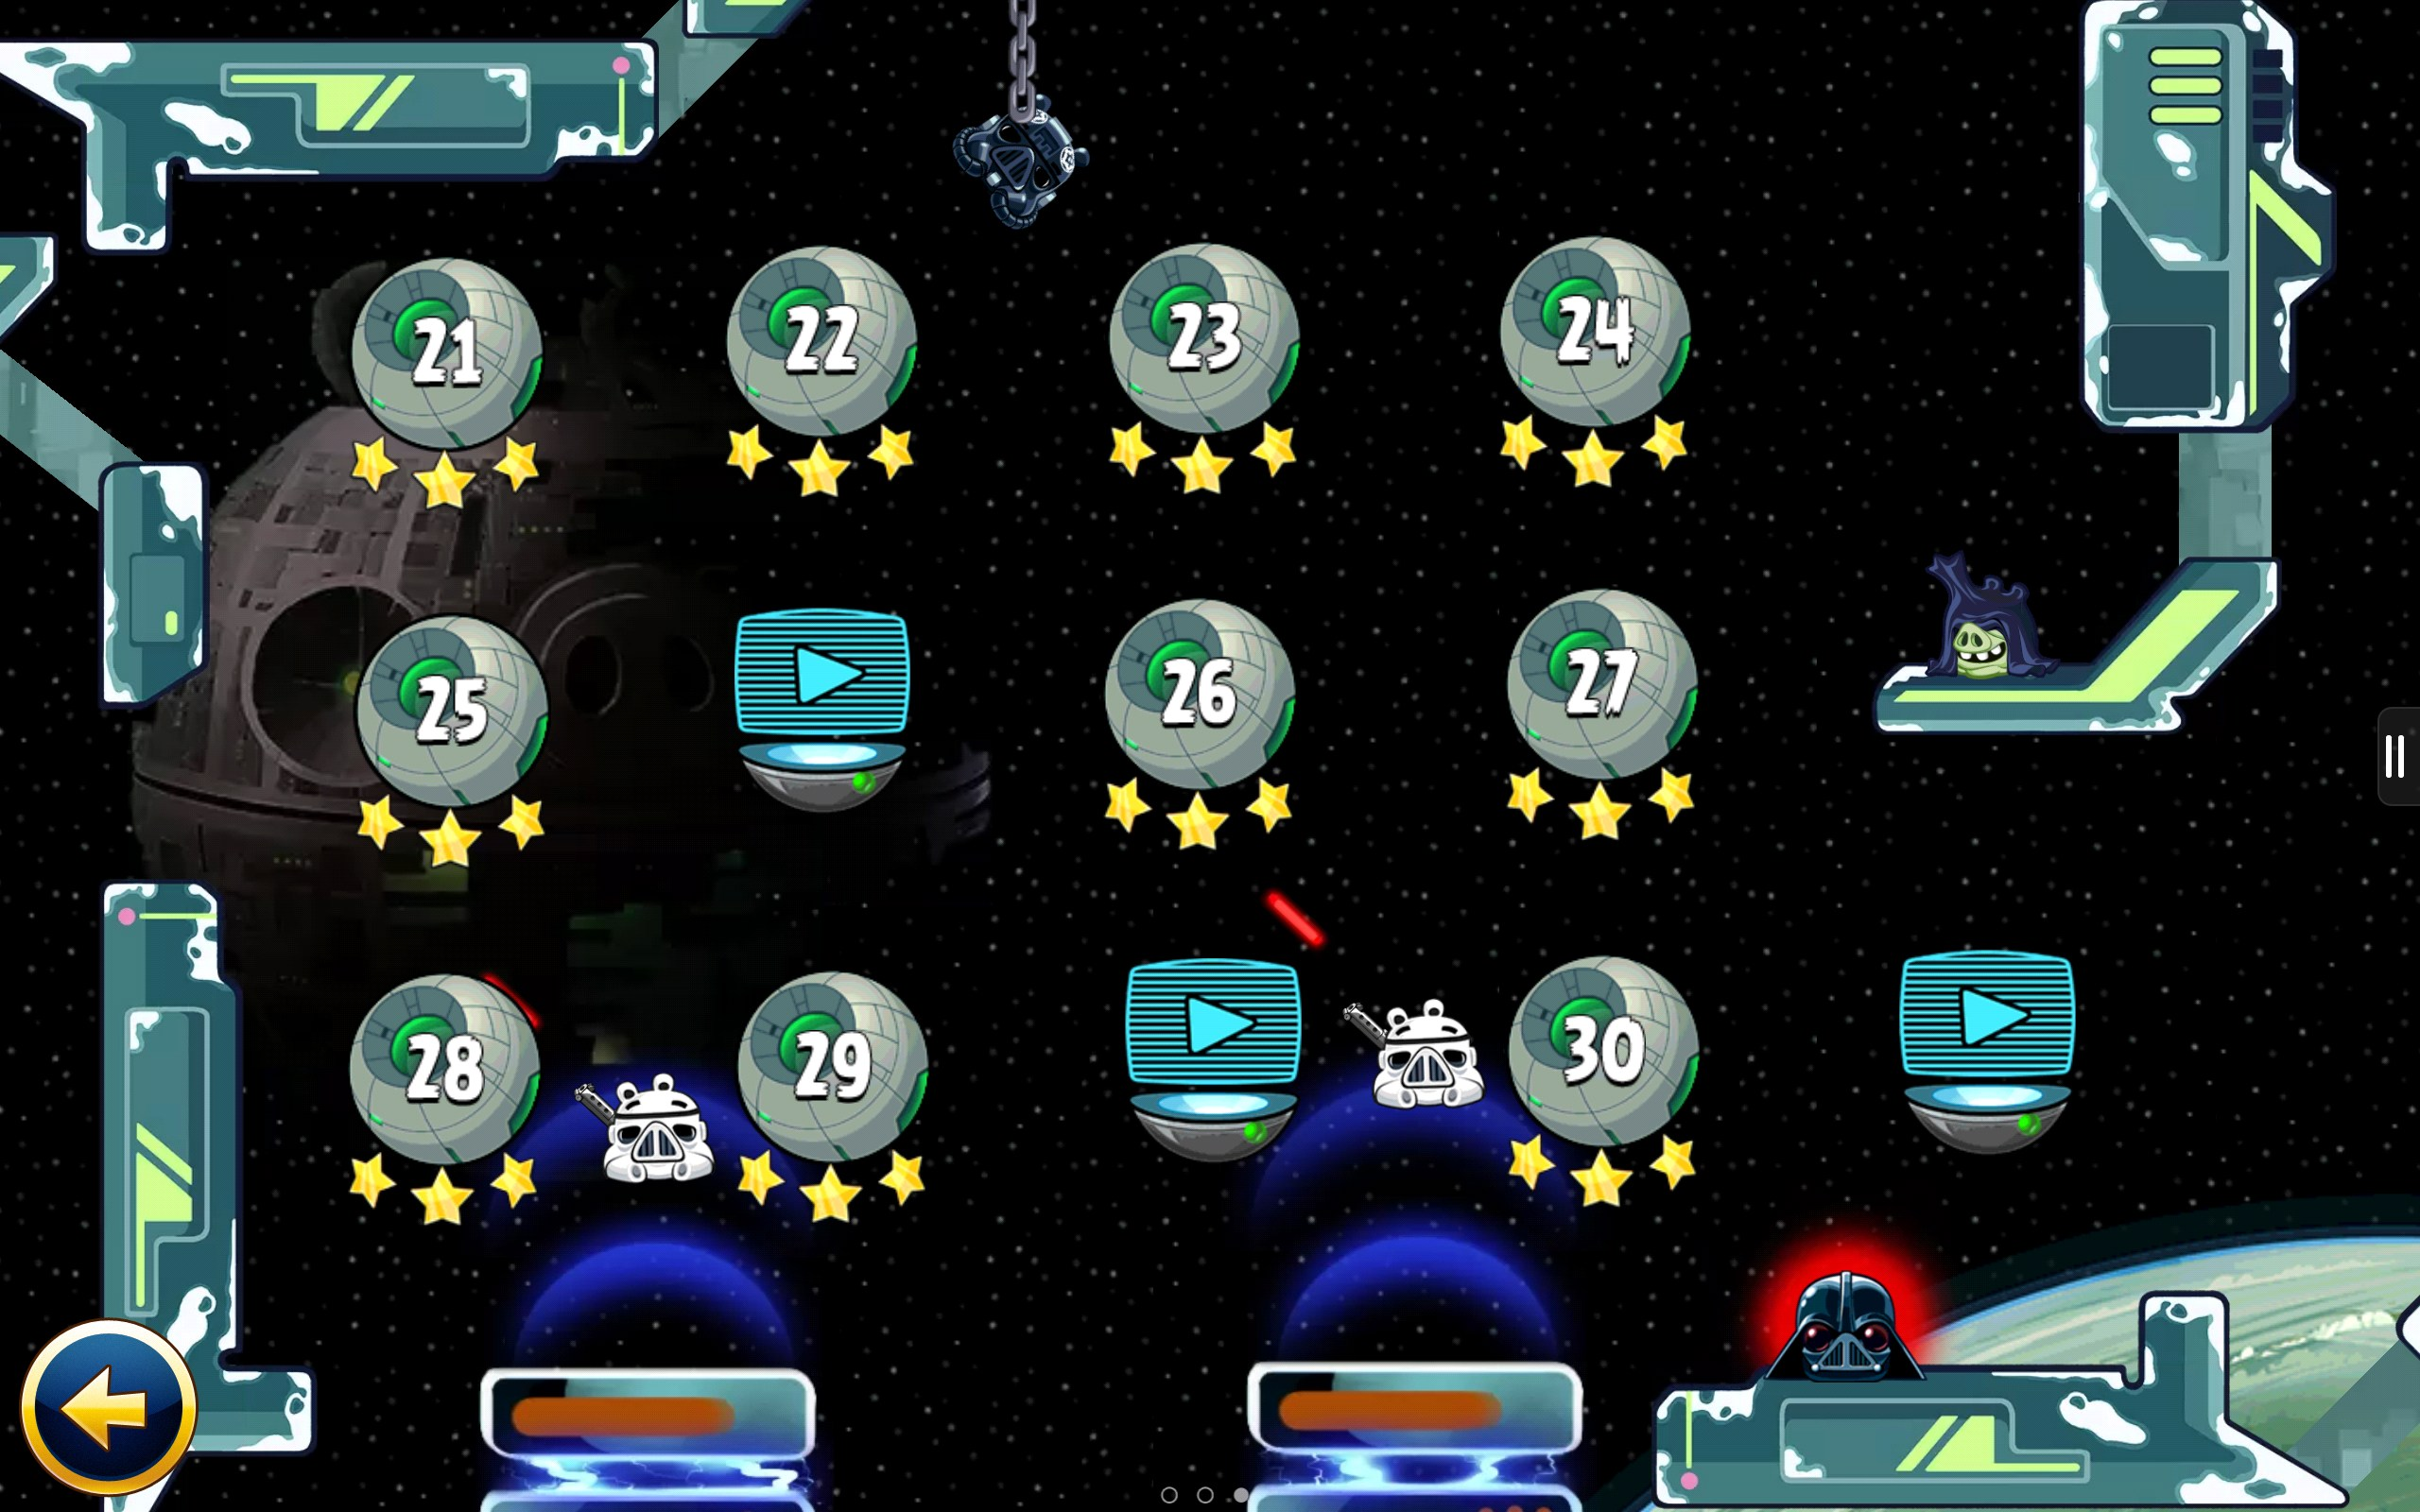 angry birds star wars for amazon kindle fire 2018 free download games for android tablets. Black Bedroom Furniture Sets. Home Design Ideas